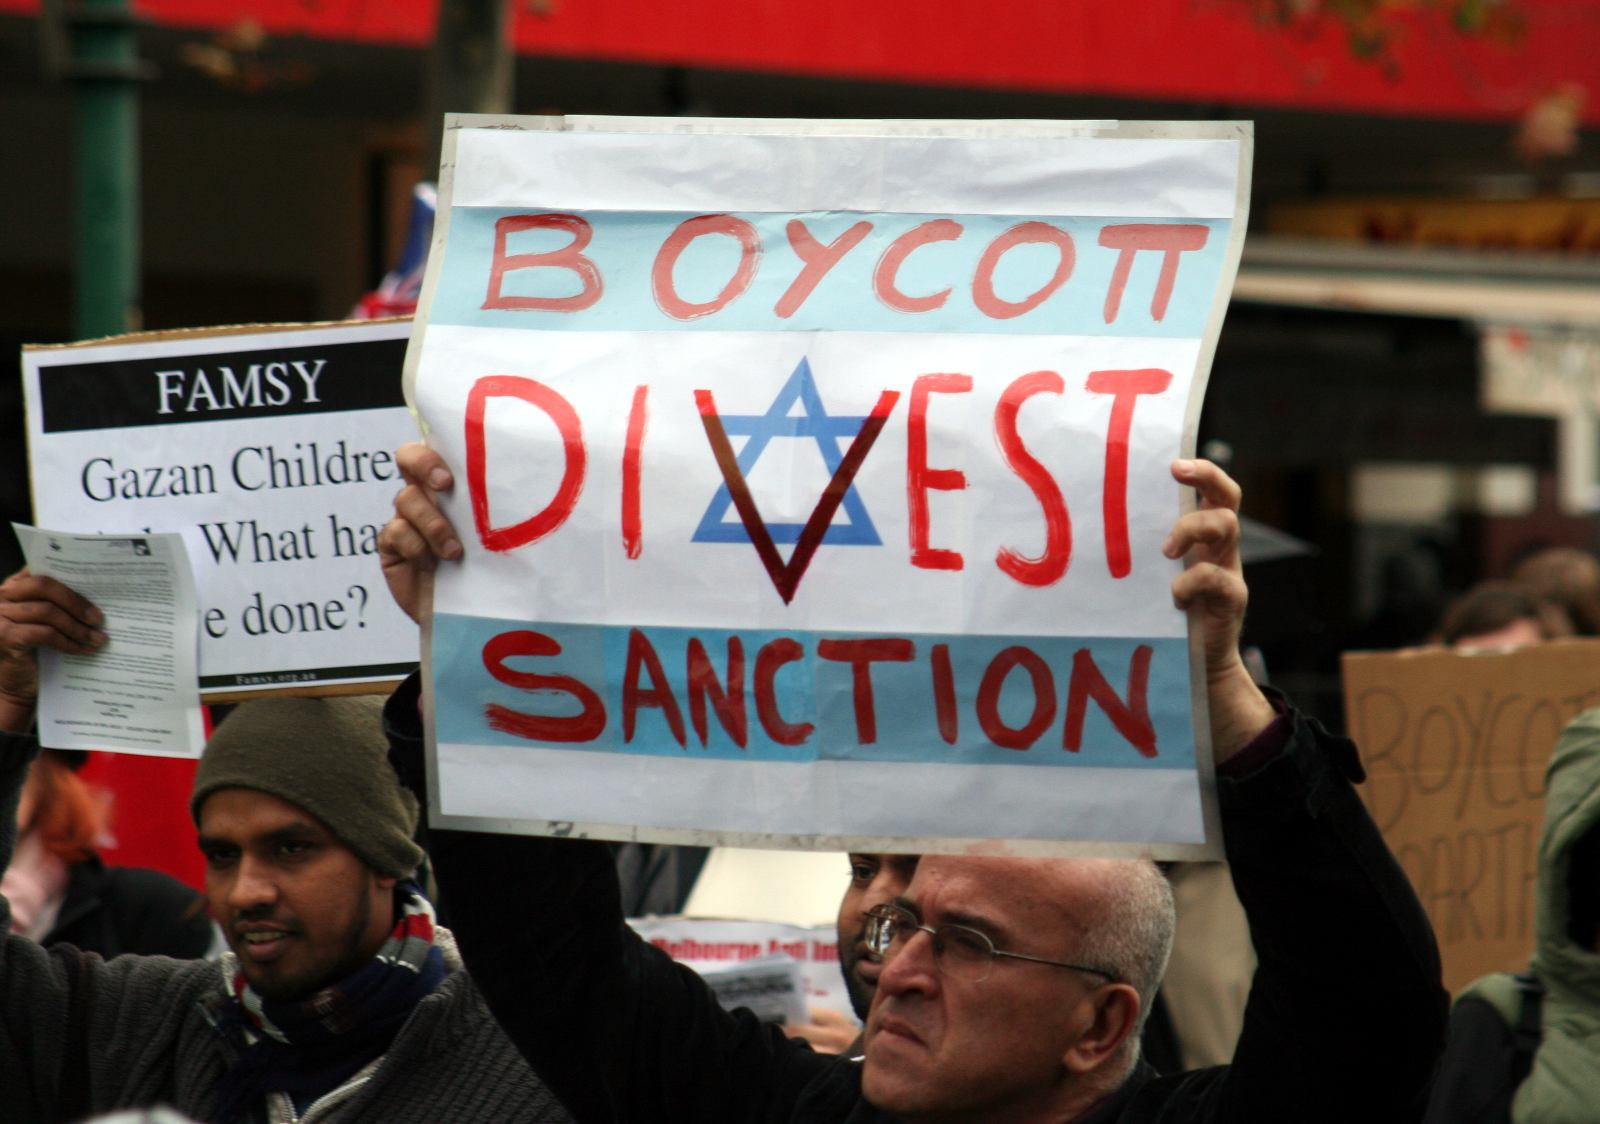 The global boycott movement has experienced a recent surge of support worldwide